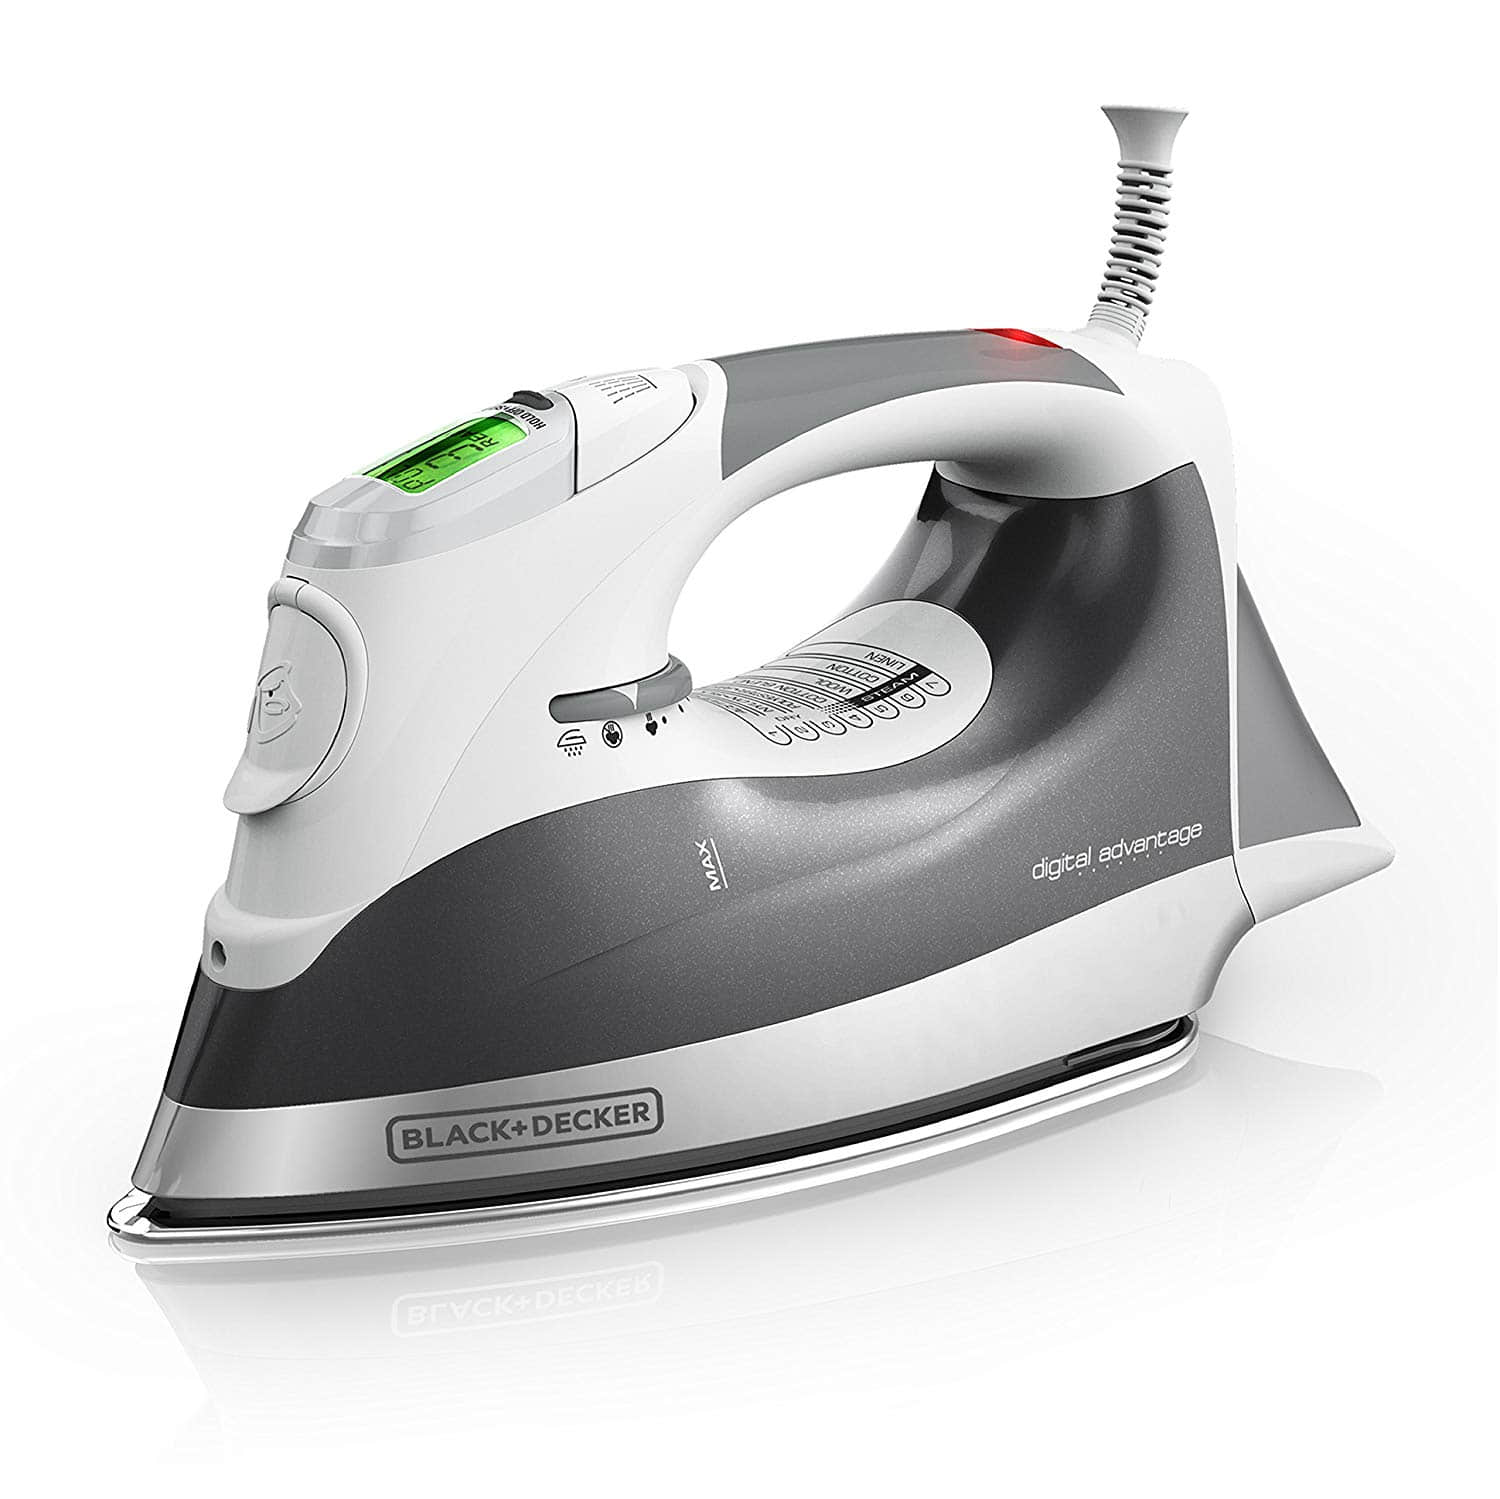 Top 3 best Steam Irons on Amazon